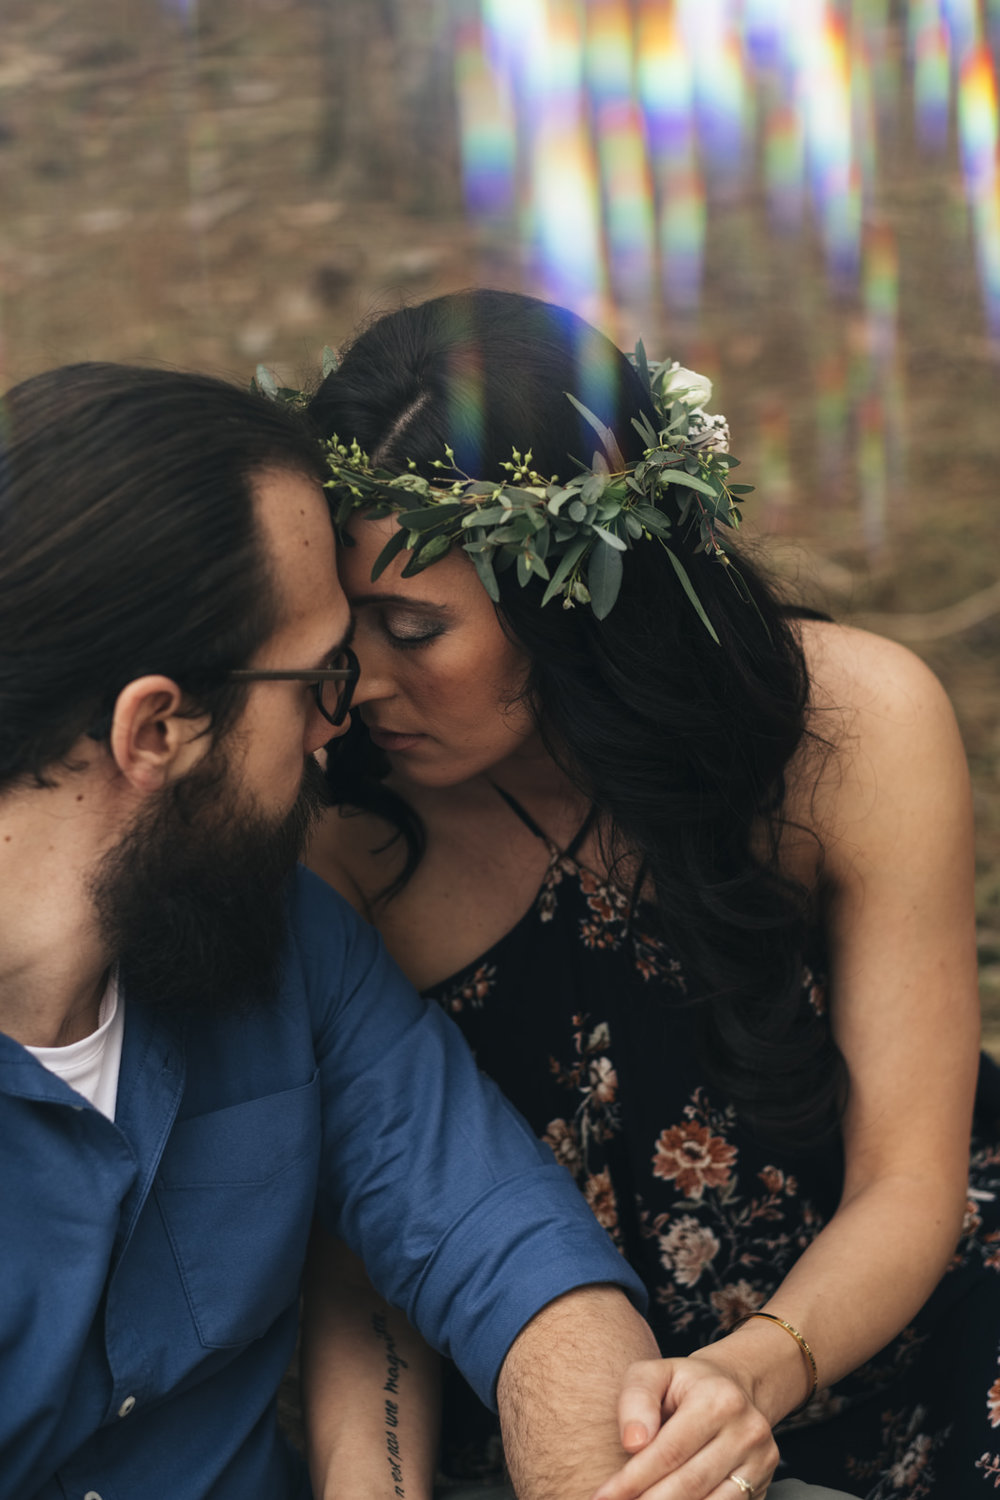 Bartz Viviano flower crown on bride-to-be during engagement session in Toledo, Ohio.